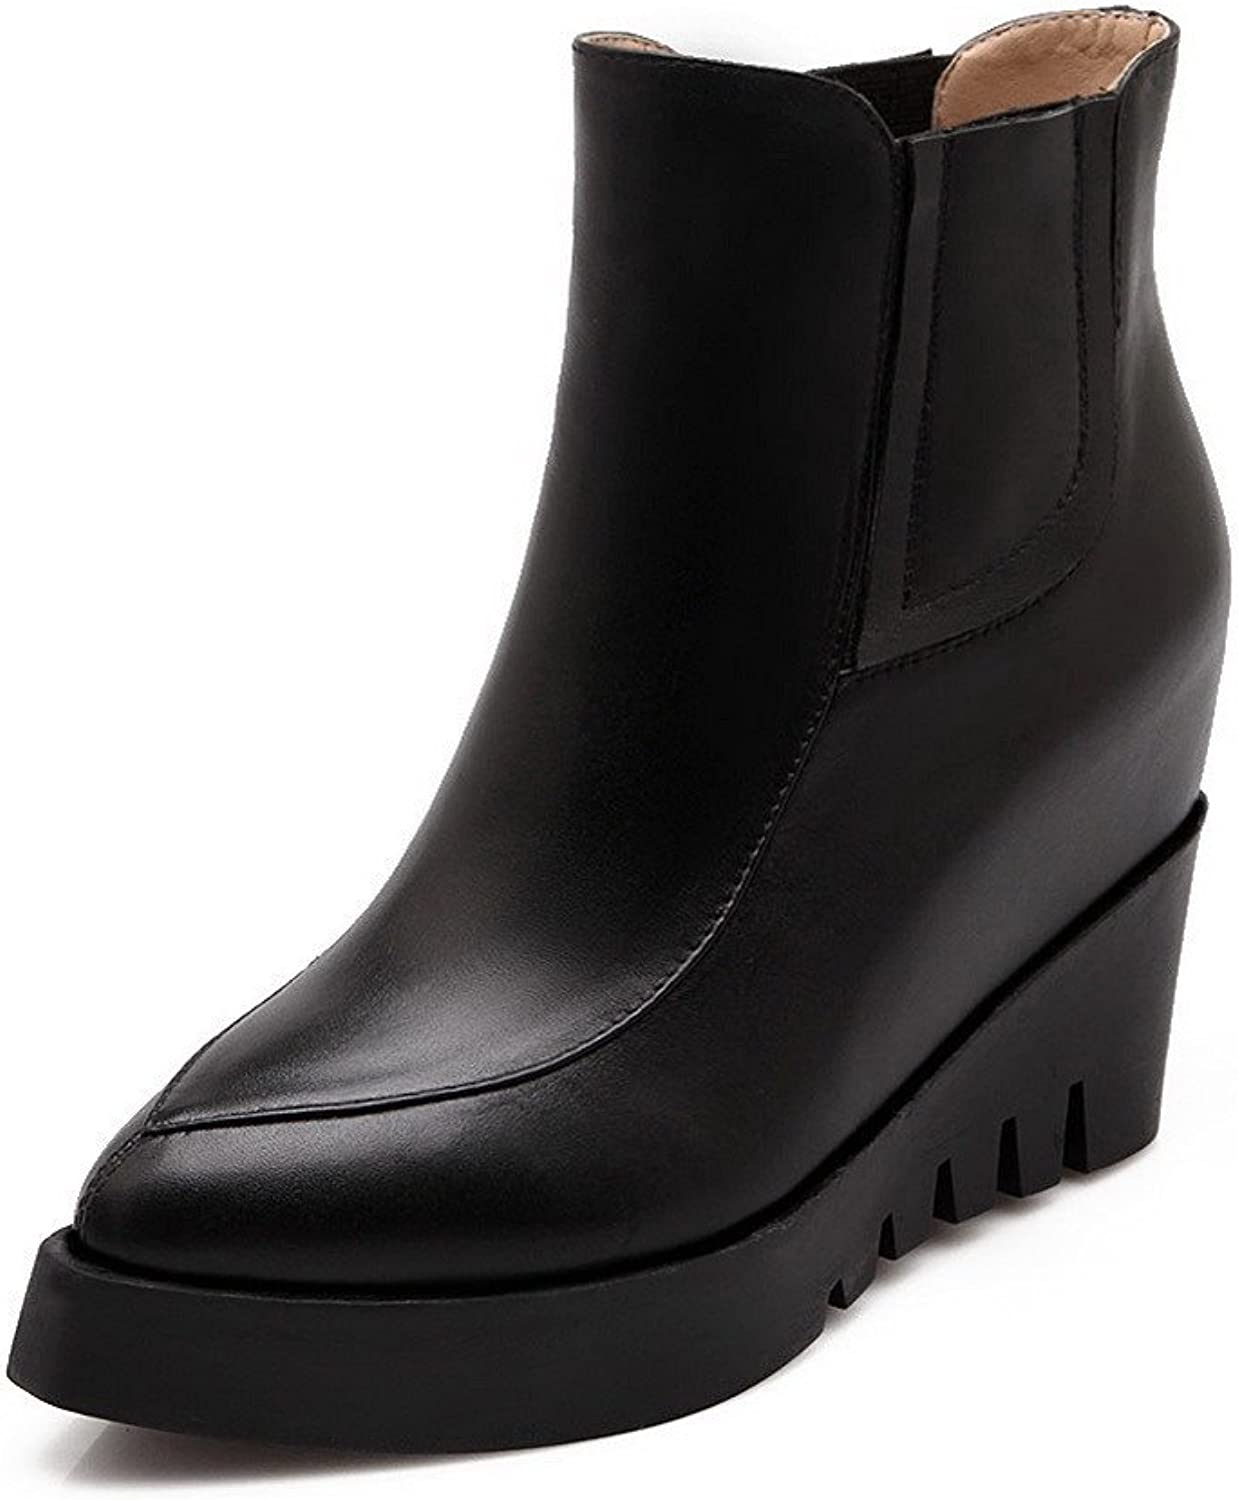 WeenFashion Women's Pointed Closed Toe Cow Leather Elastic High-Heels Low-top Boots